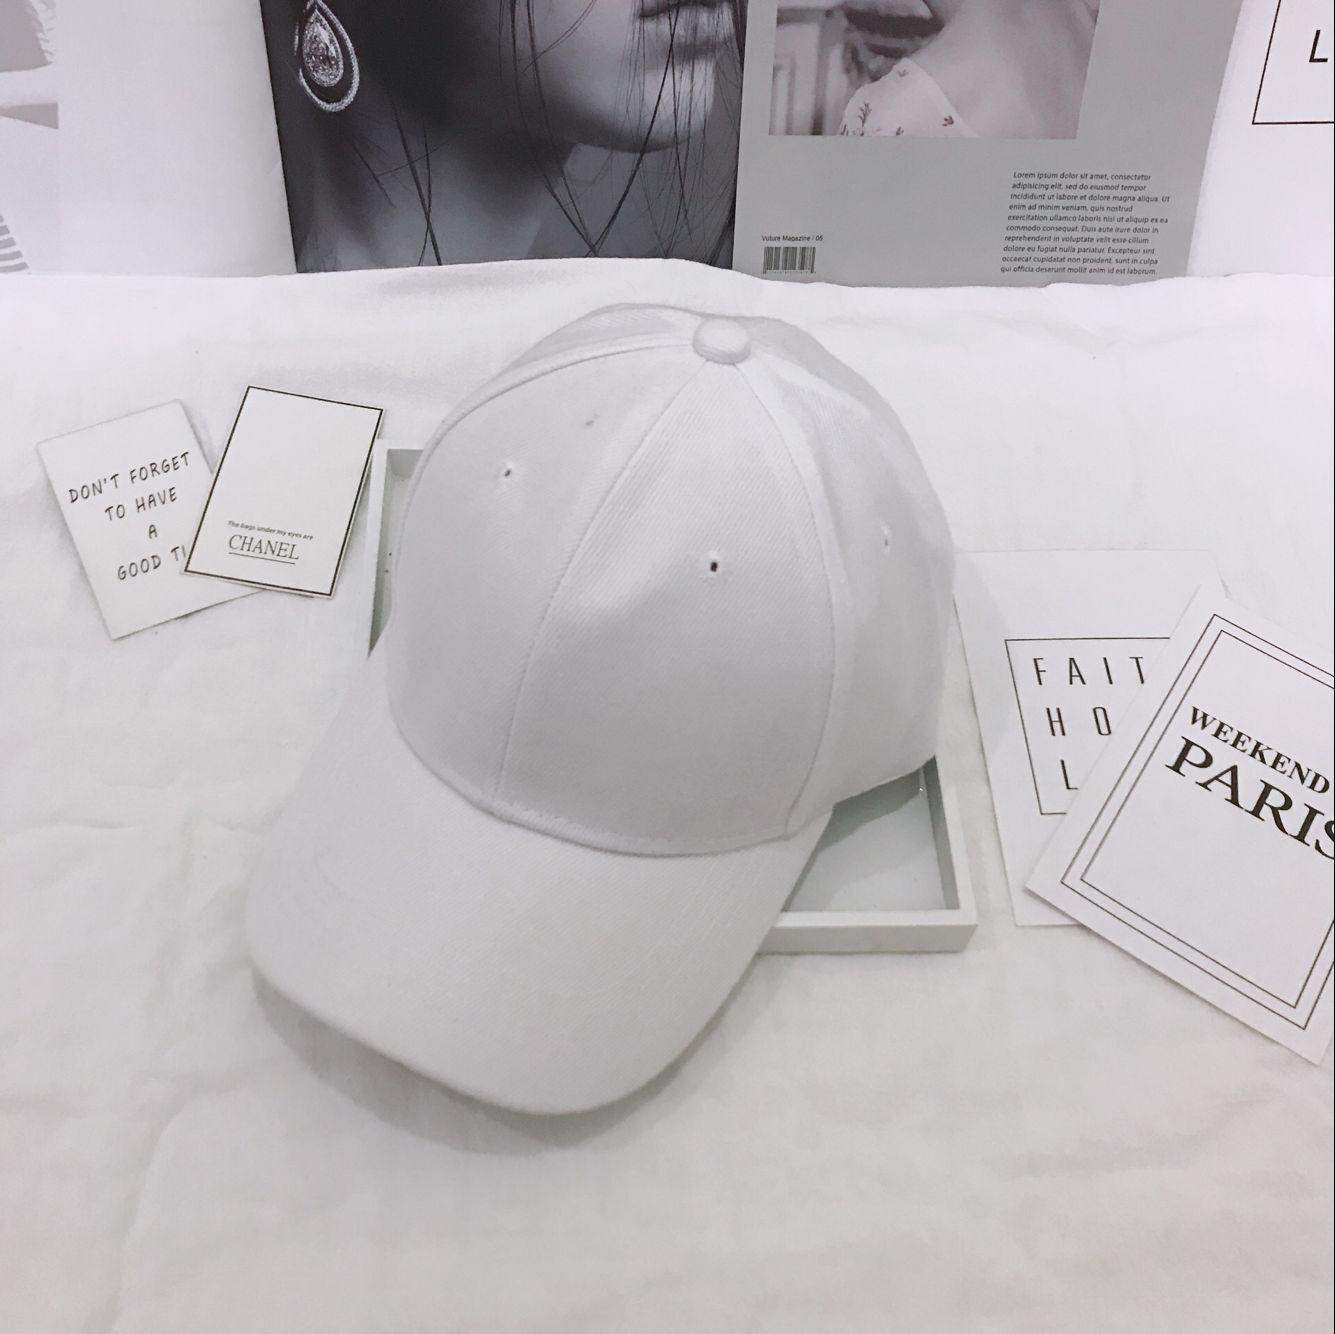 5b72199c7 Hats for Men for sale - Mens Hats Online Deals & Prices in Philippines |  Lazada.com.ph